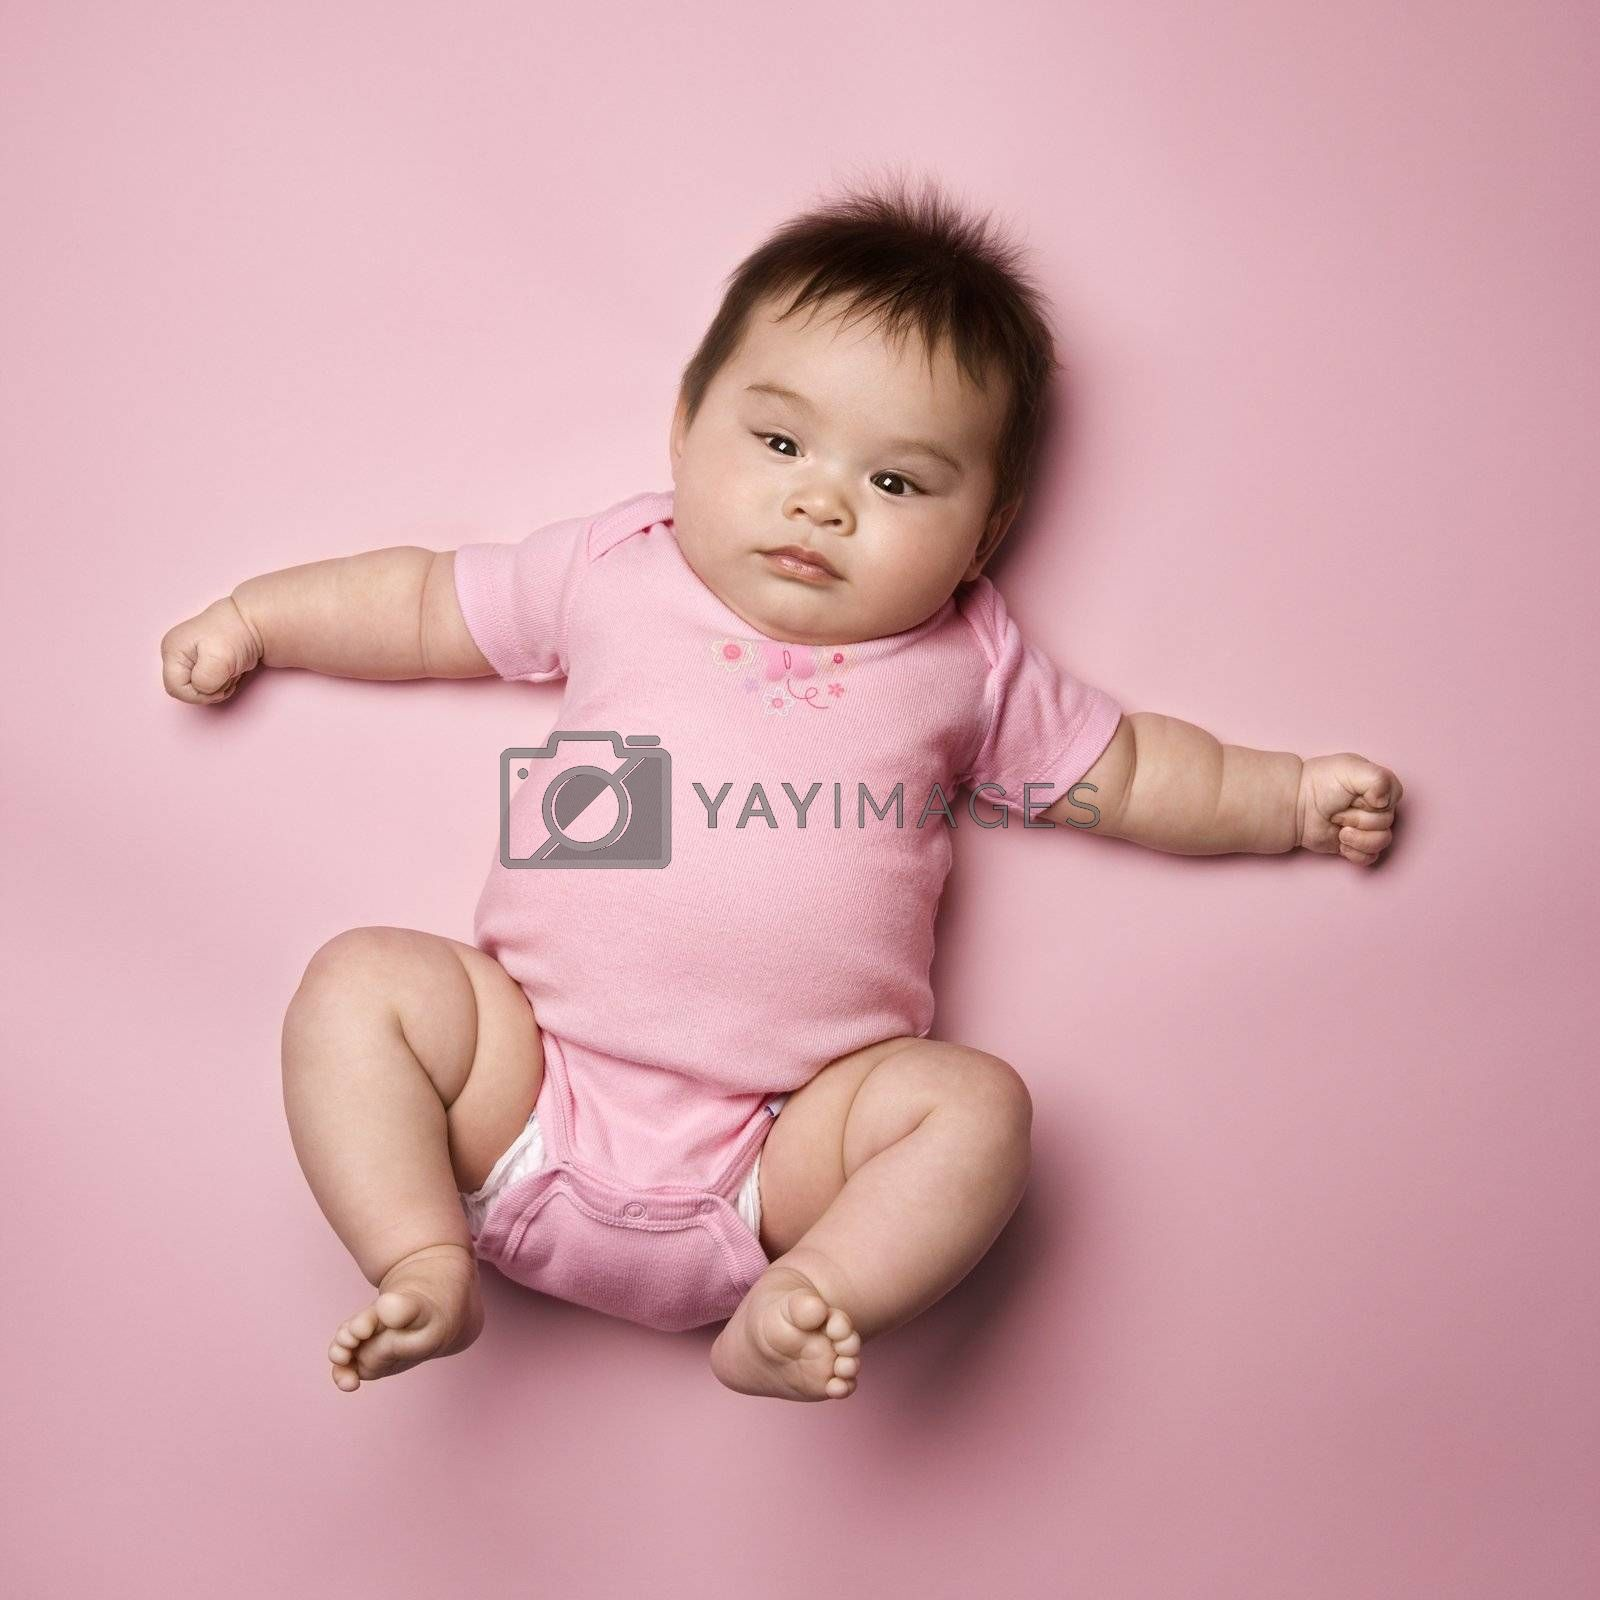 Asian baby lying on back lookin up at viewer with arms out to side.